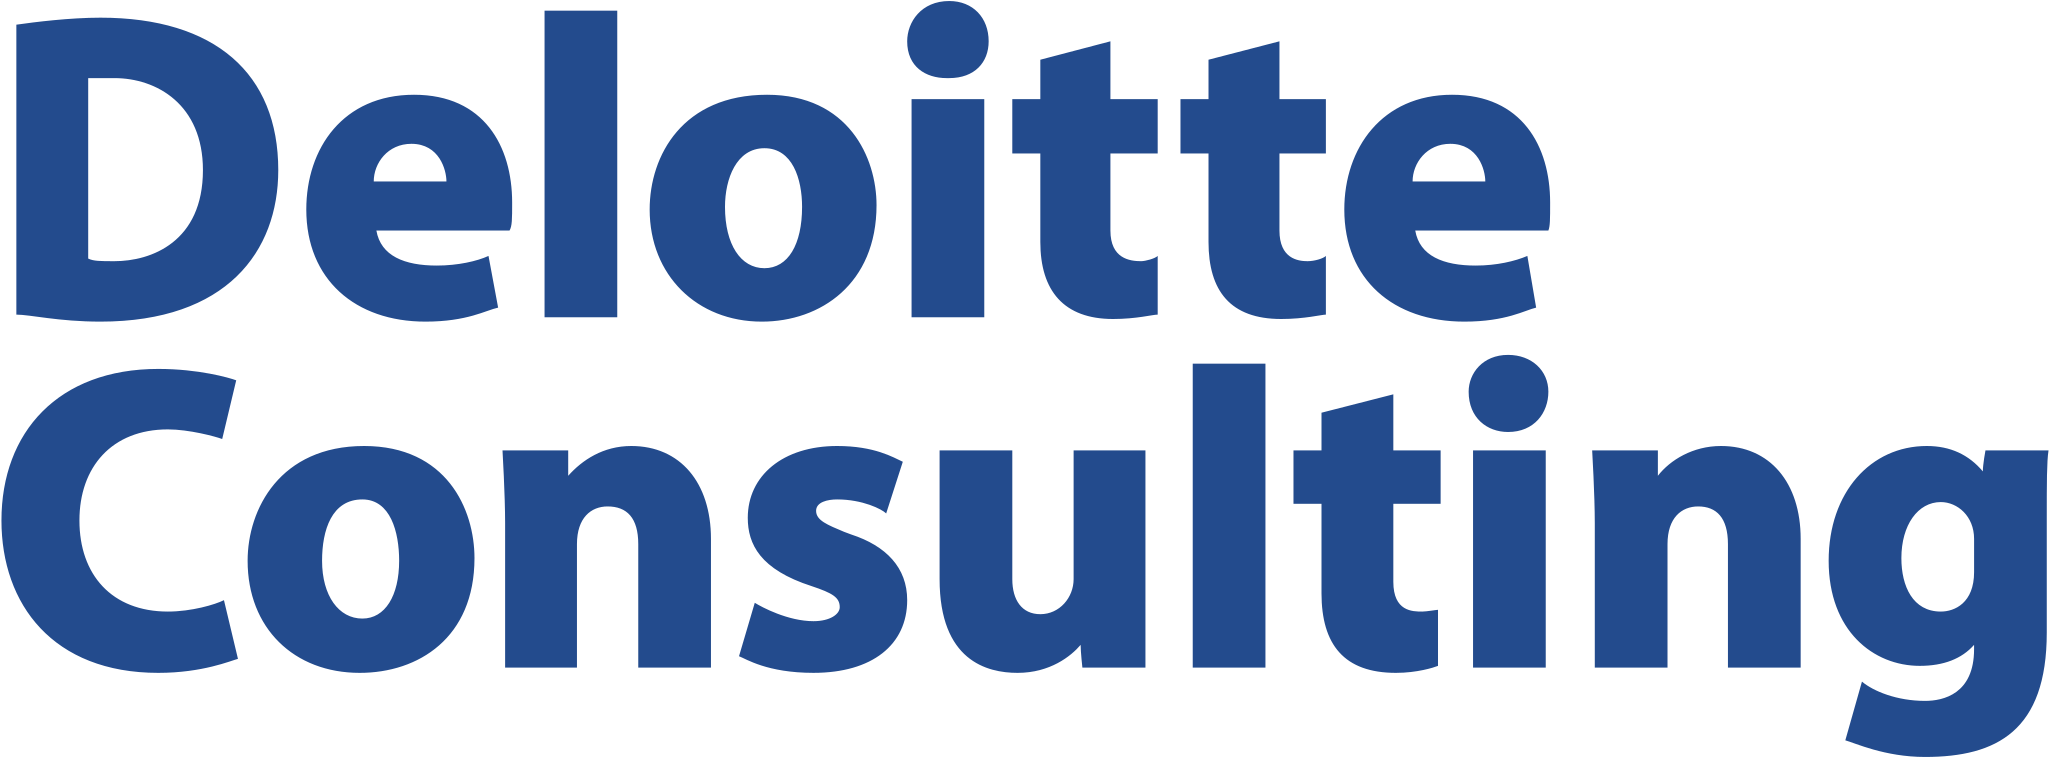 Download Deloitte Consulting Logo Png Transparent.